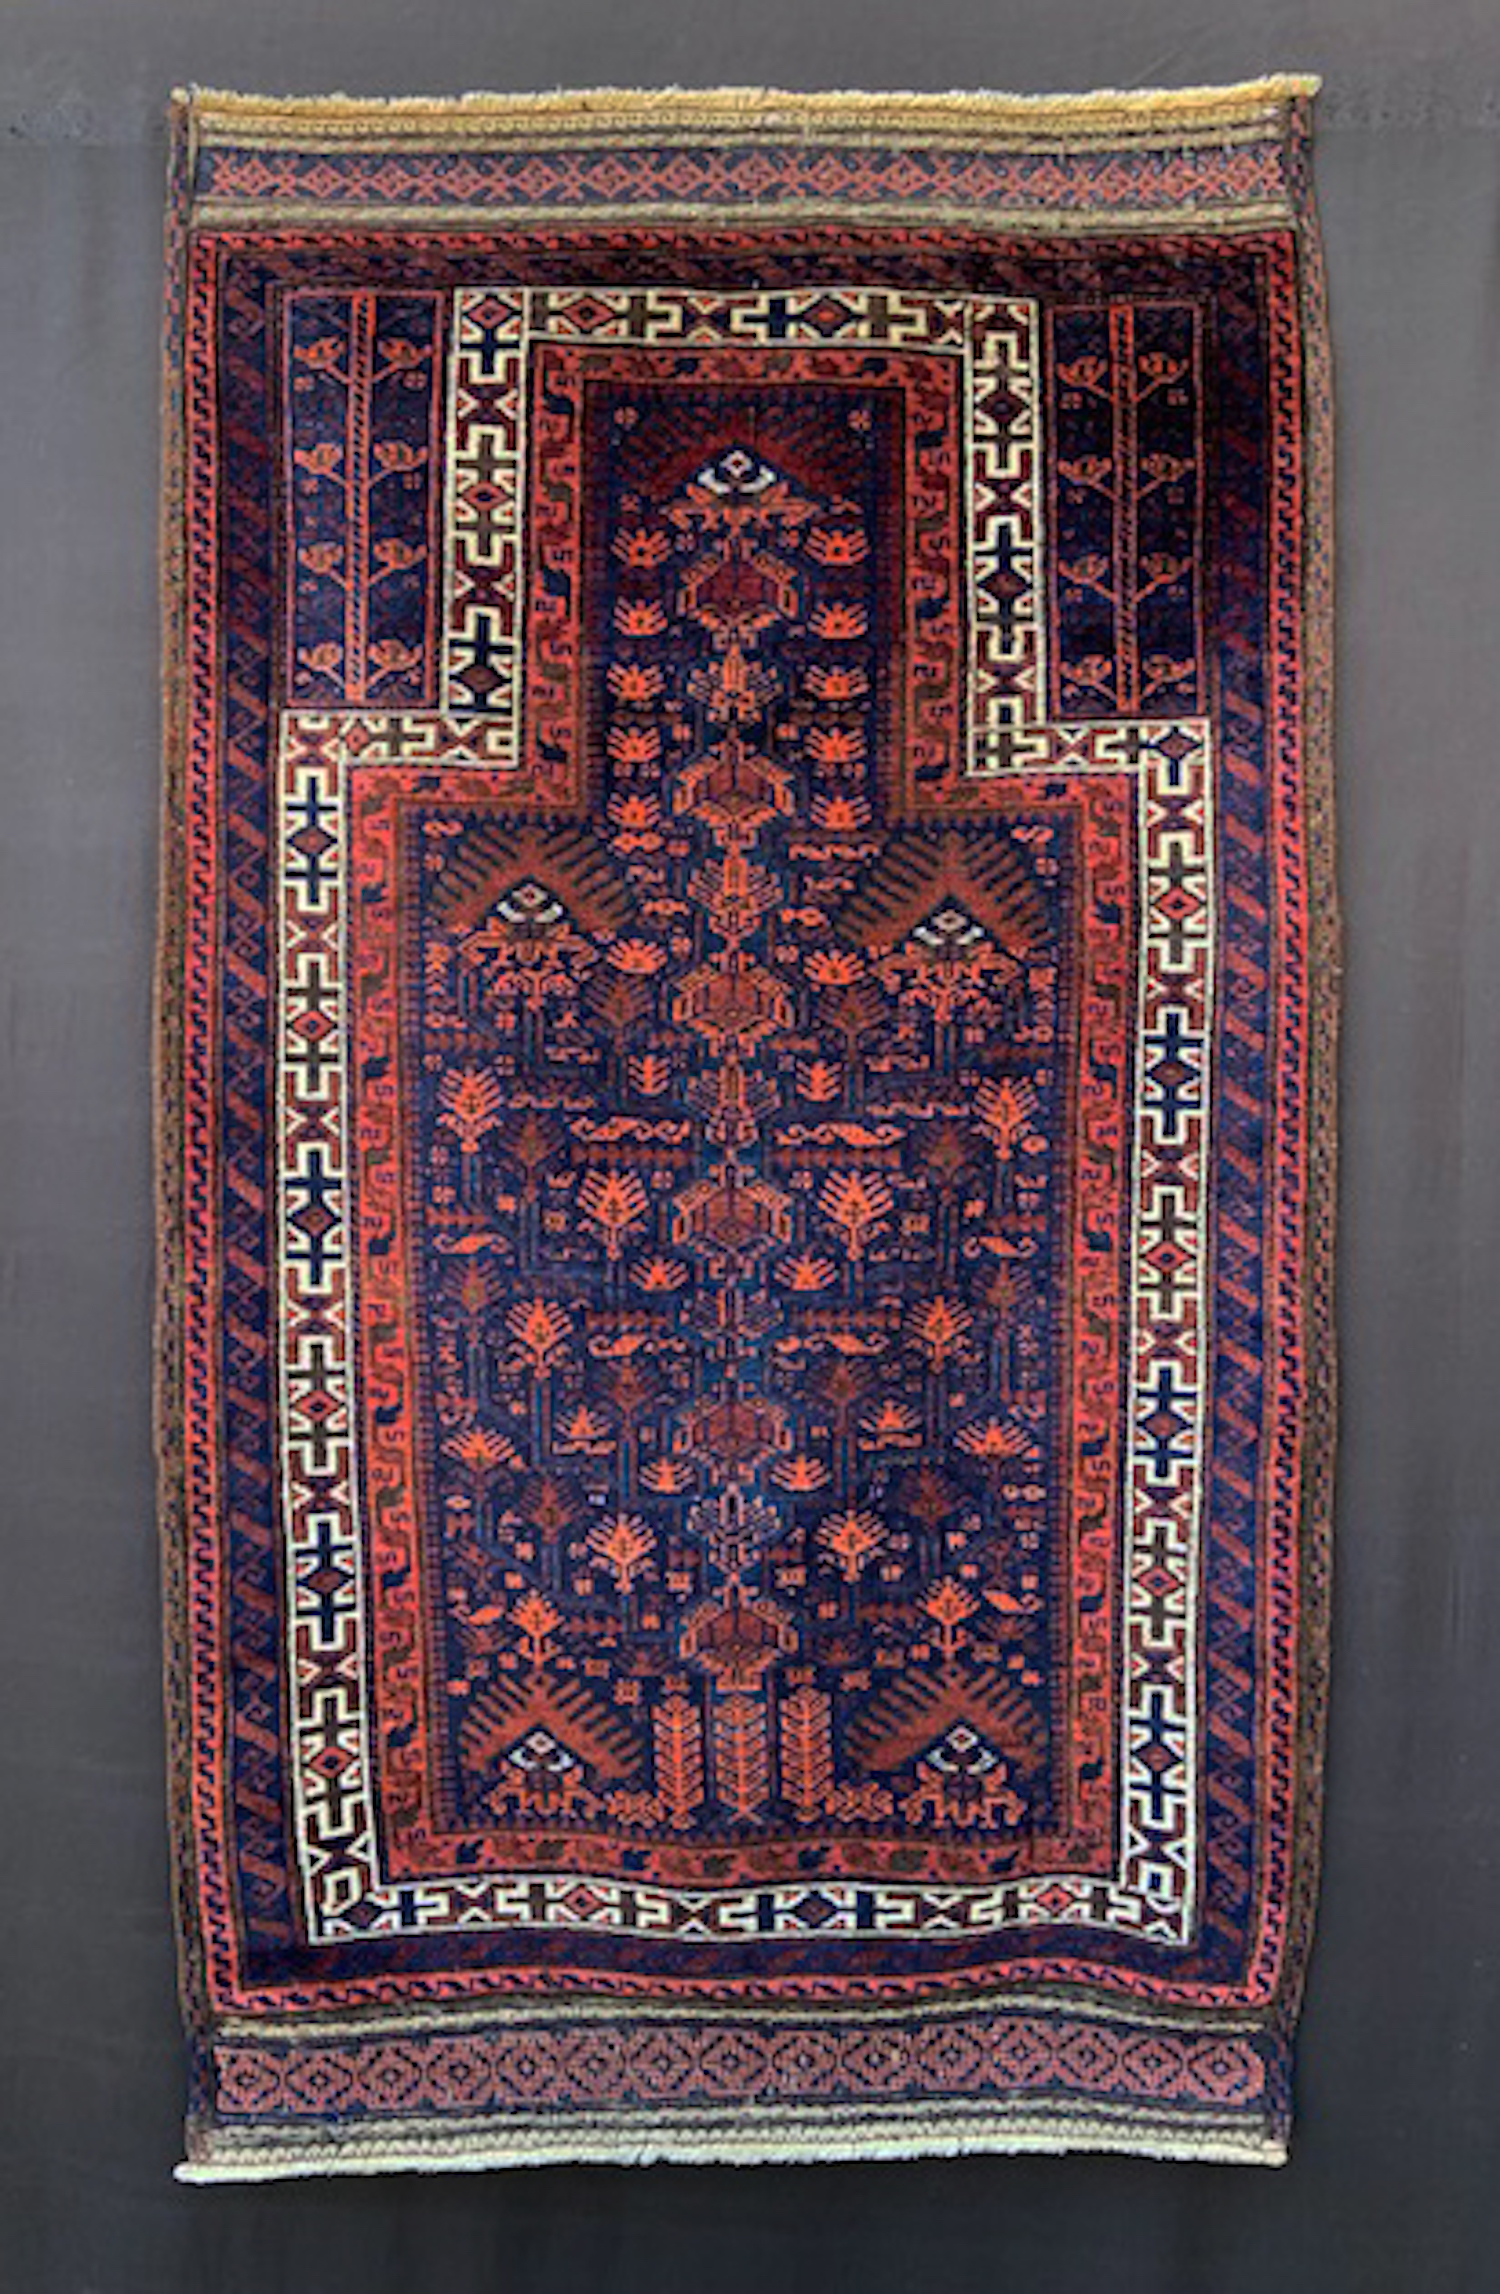 Timuri Prayer-Rug